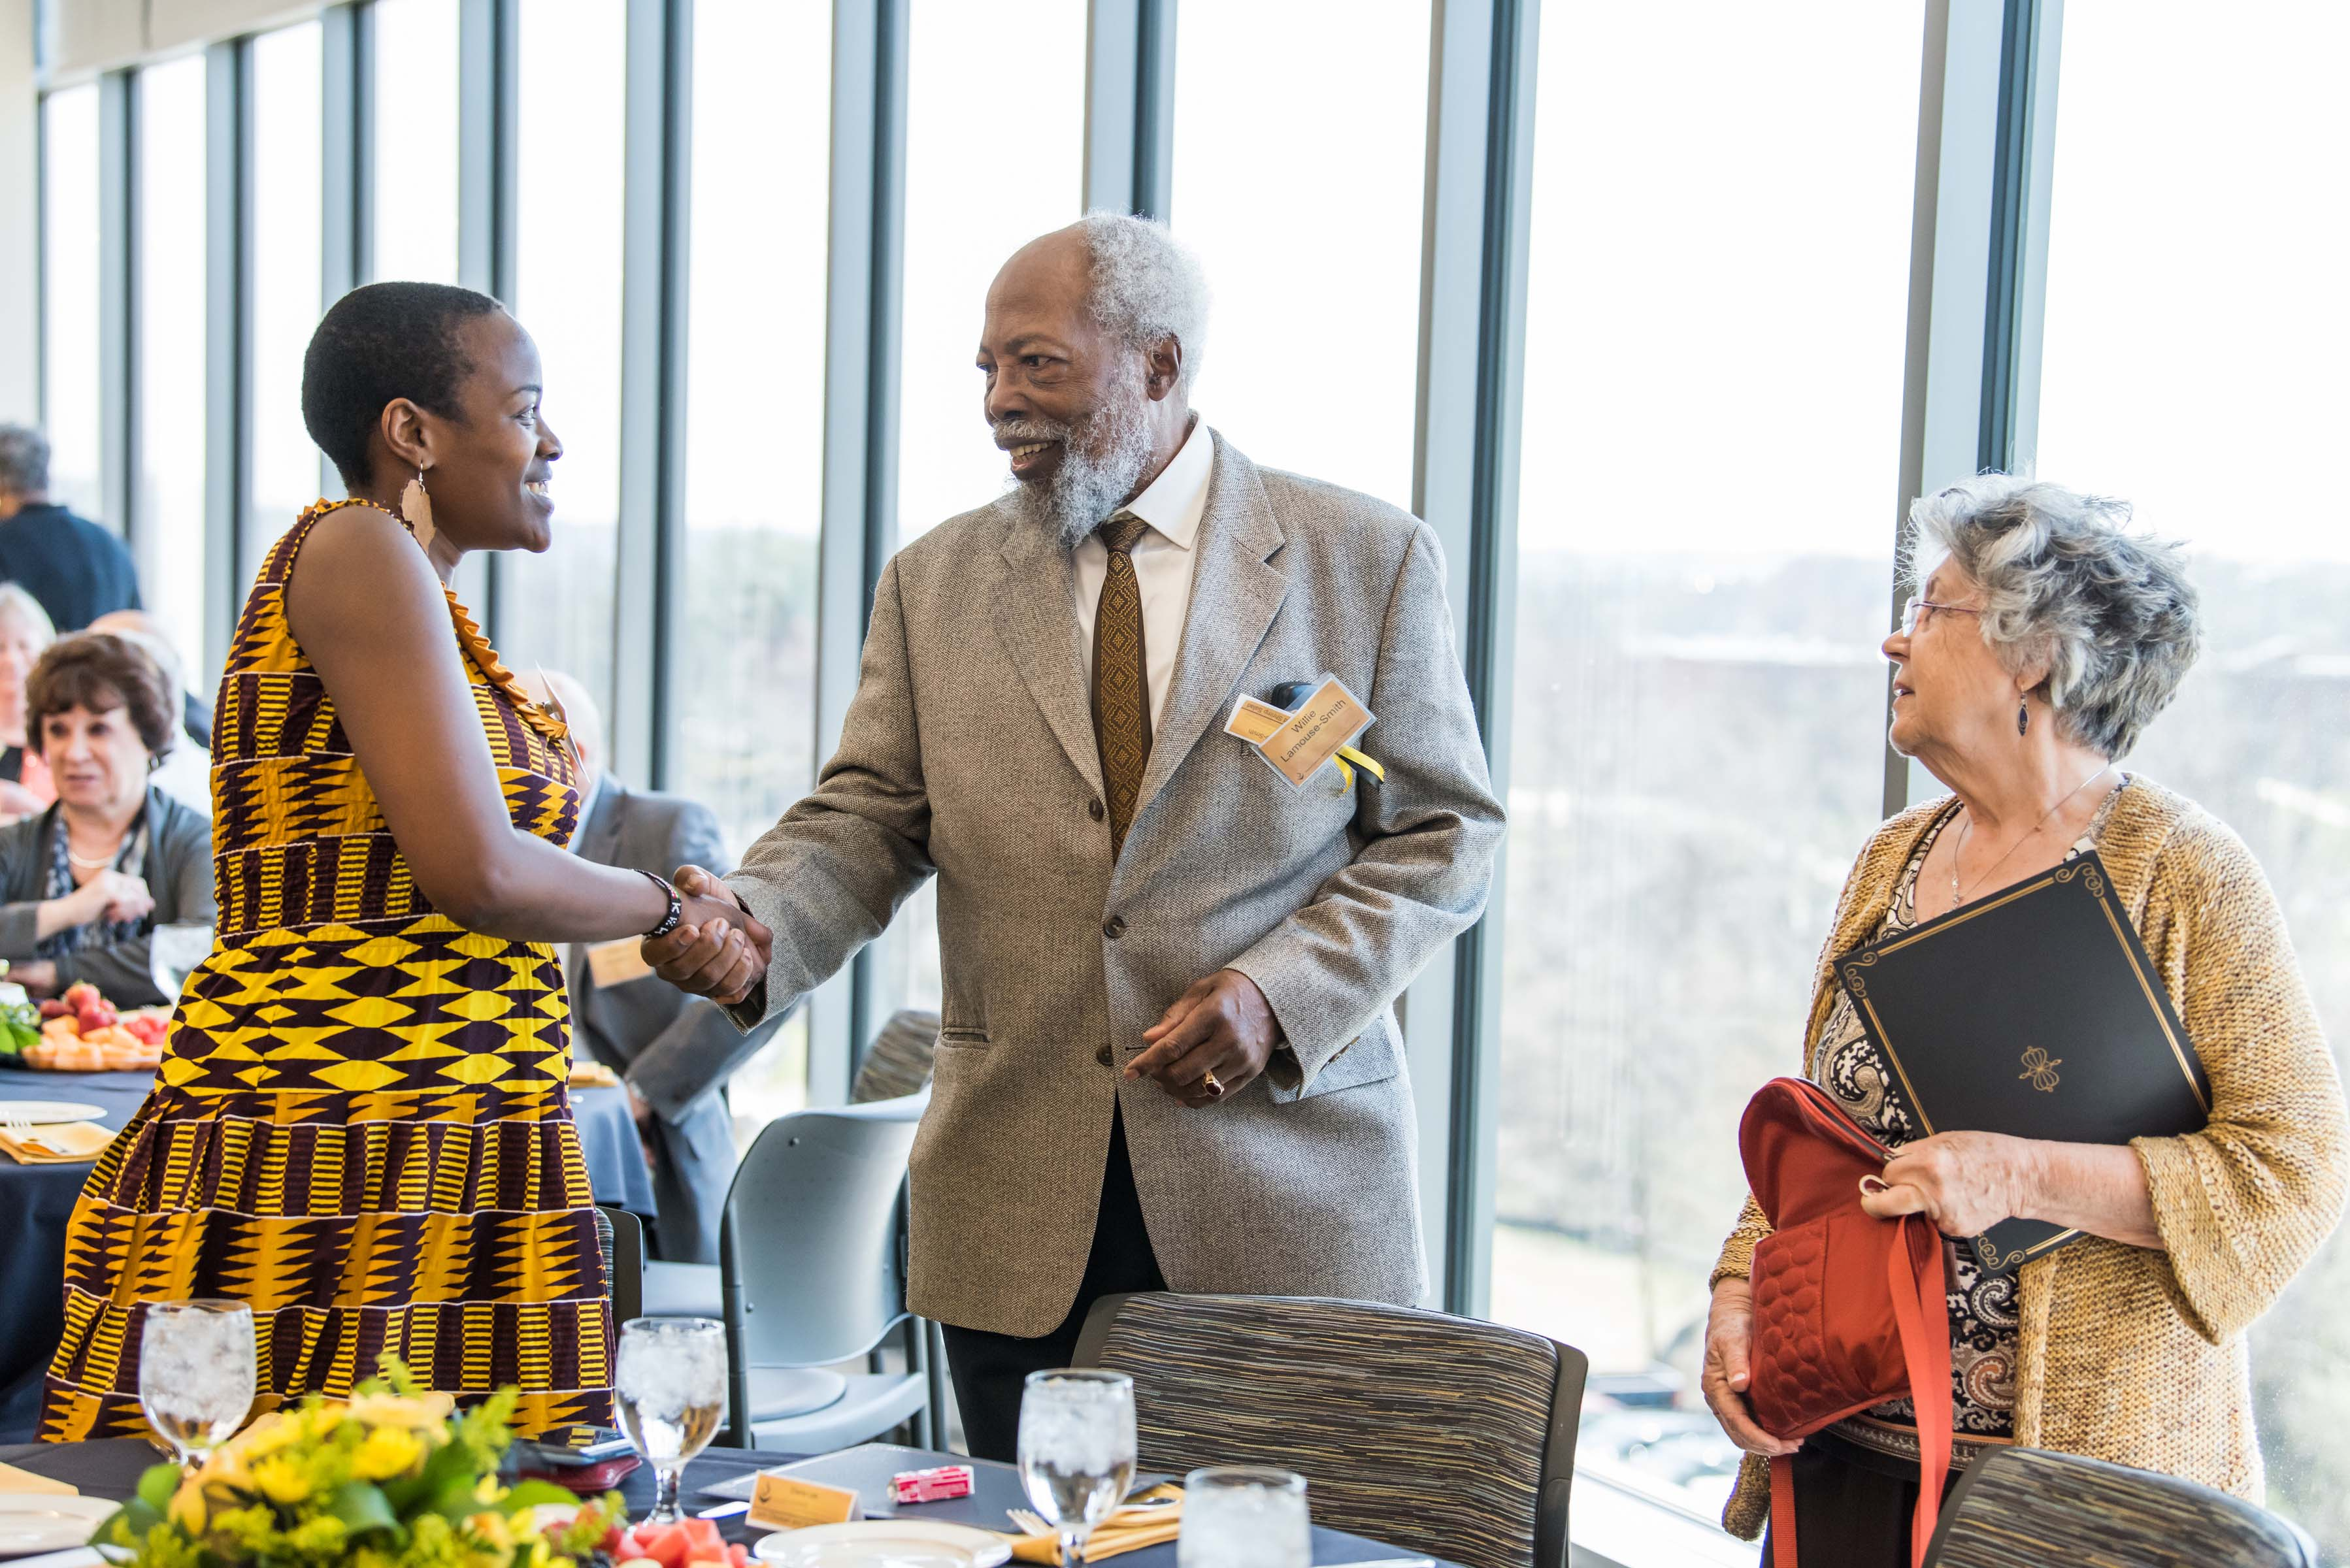 Naomi Mburu shakes mans hand as woman looks on at Wisdom Institute lunch